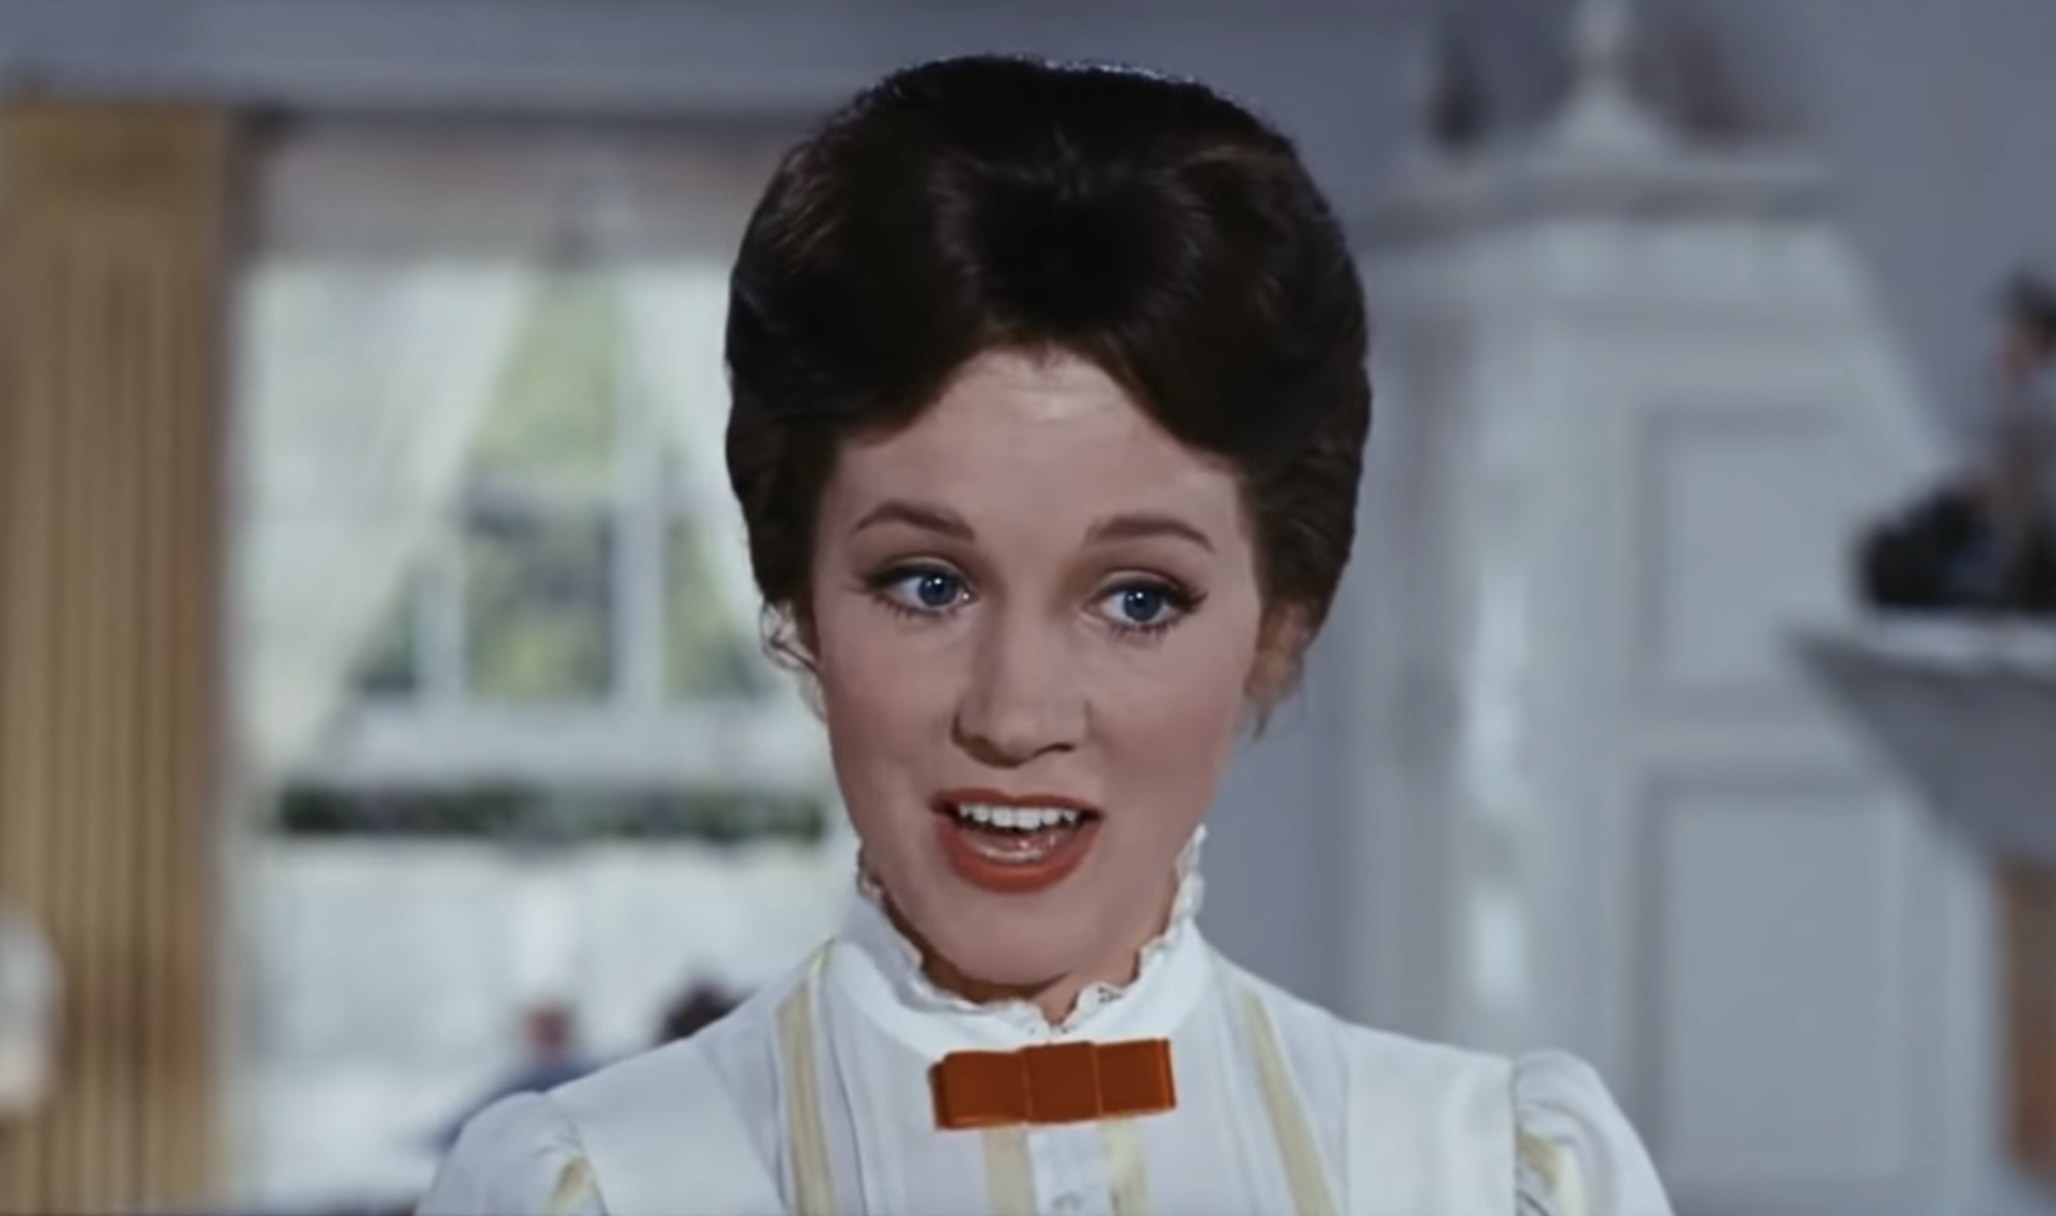 Mary Poppins in the original 1964 film